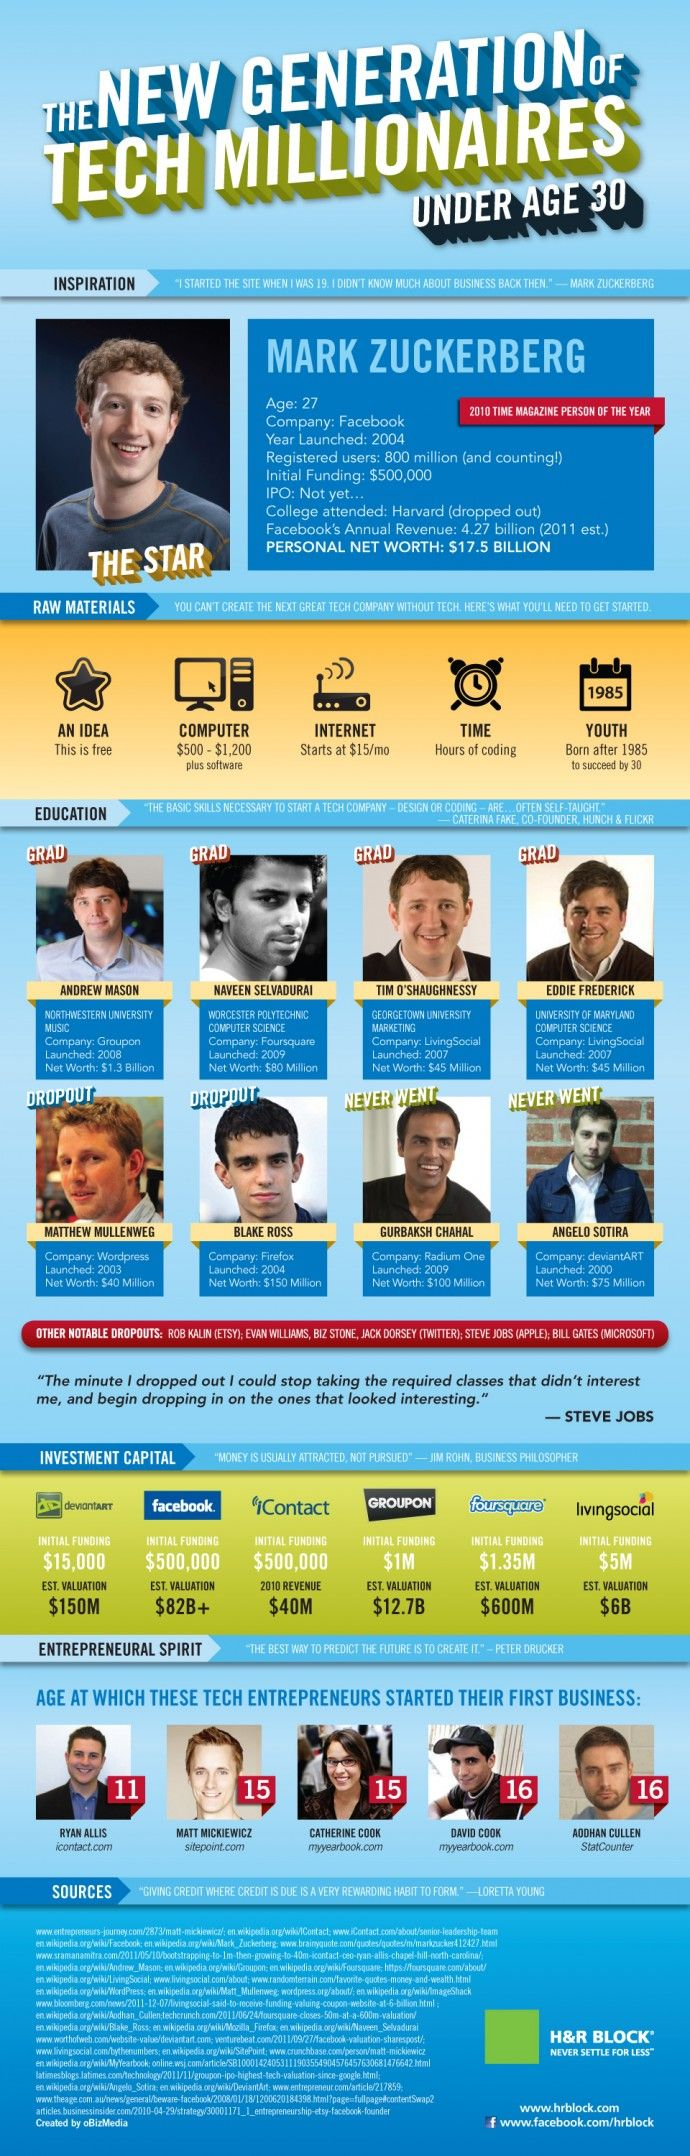 Tech Millionaires Under 30 Who Will Inspire You [Infographic]  #socialmedia #Infographic